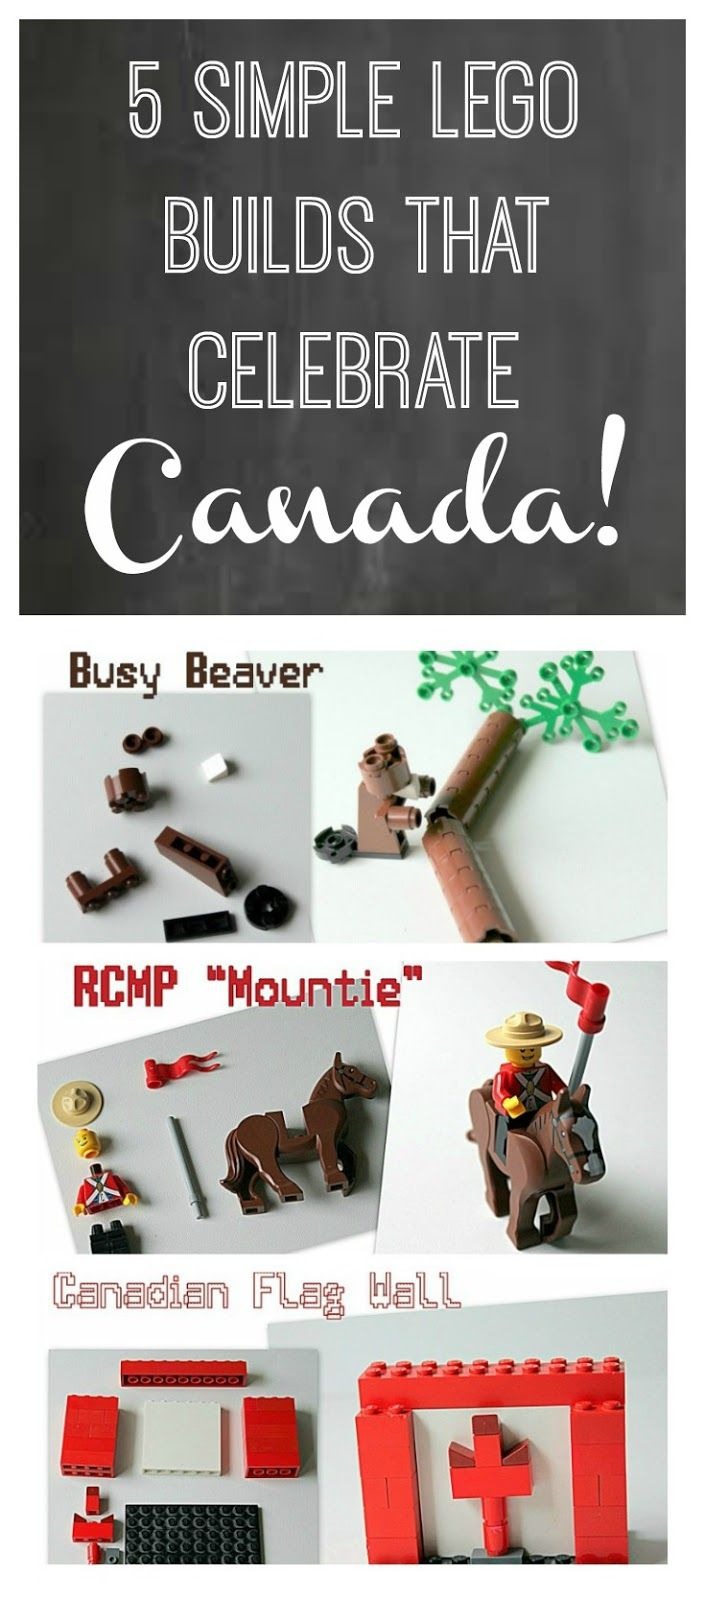 Five fun and quick Lego builds for Canada Day! How to build a beaver, tabletop hockey game, RCMP Mountie and horse, An Inuit many with a kayak and igloo and a Canadian flag to display! Hours of fun for your Lego fan.